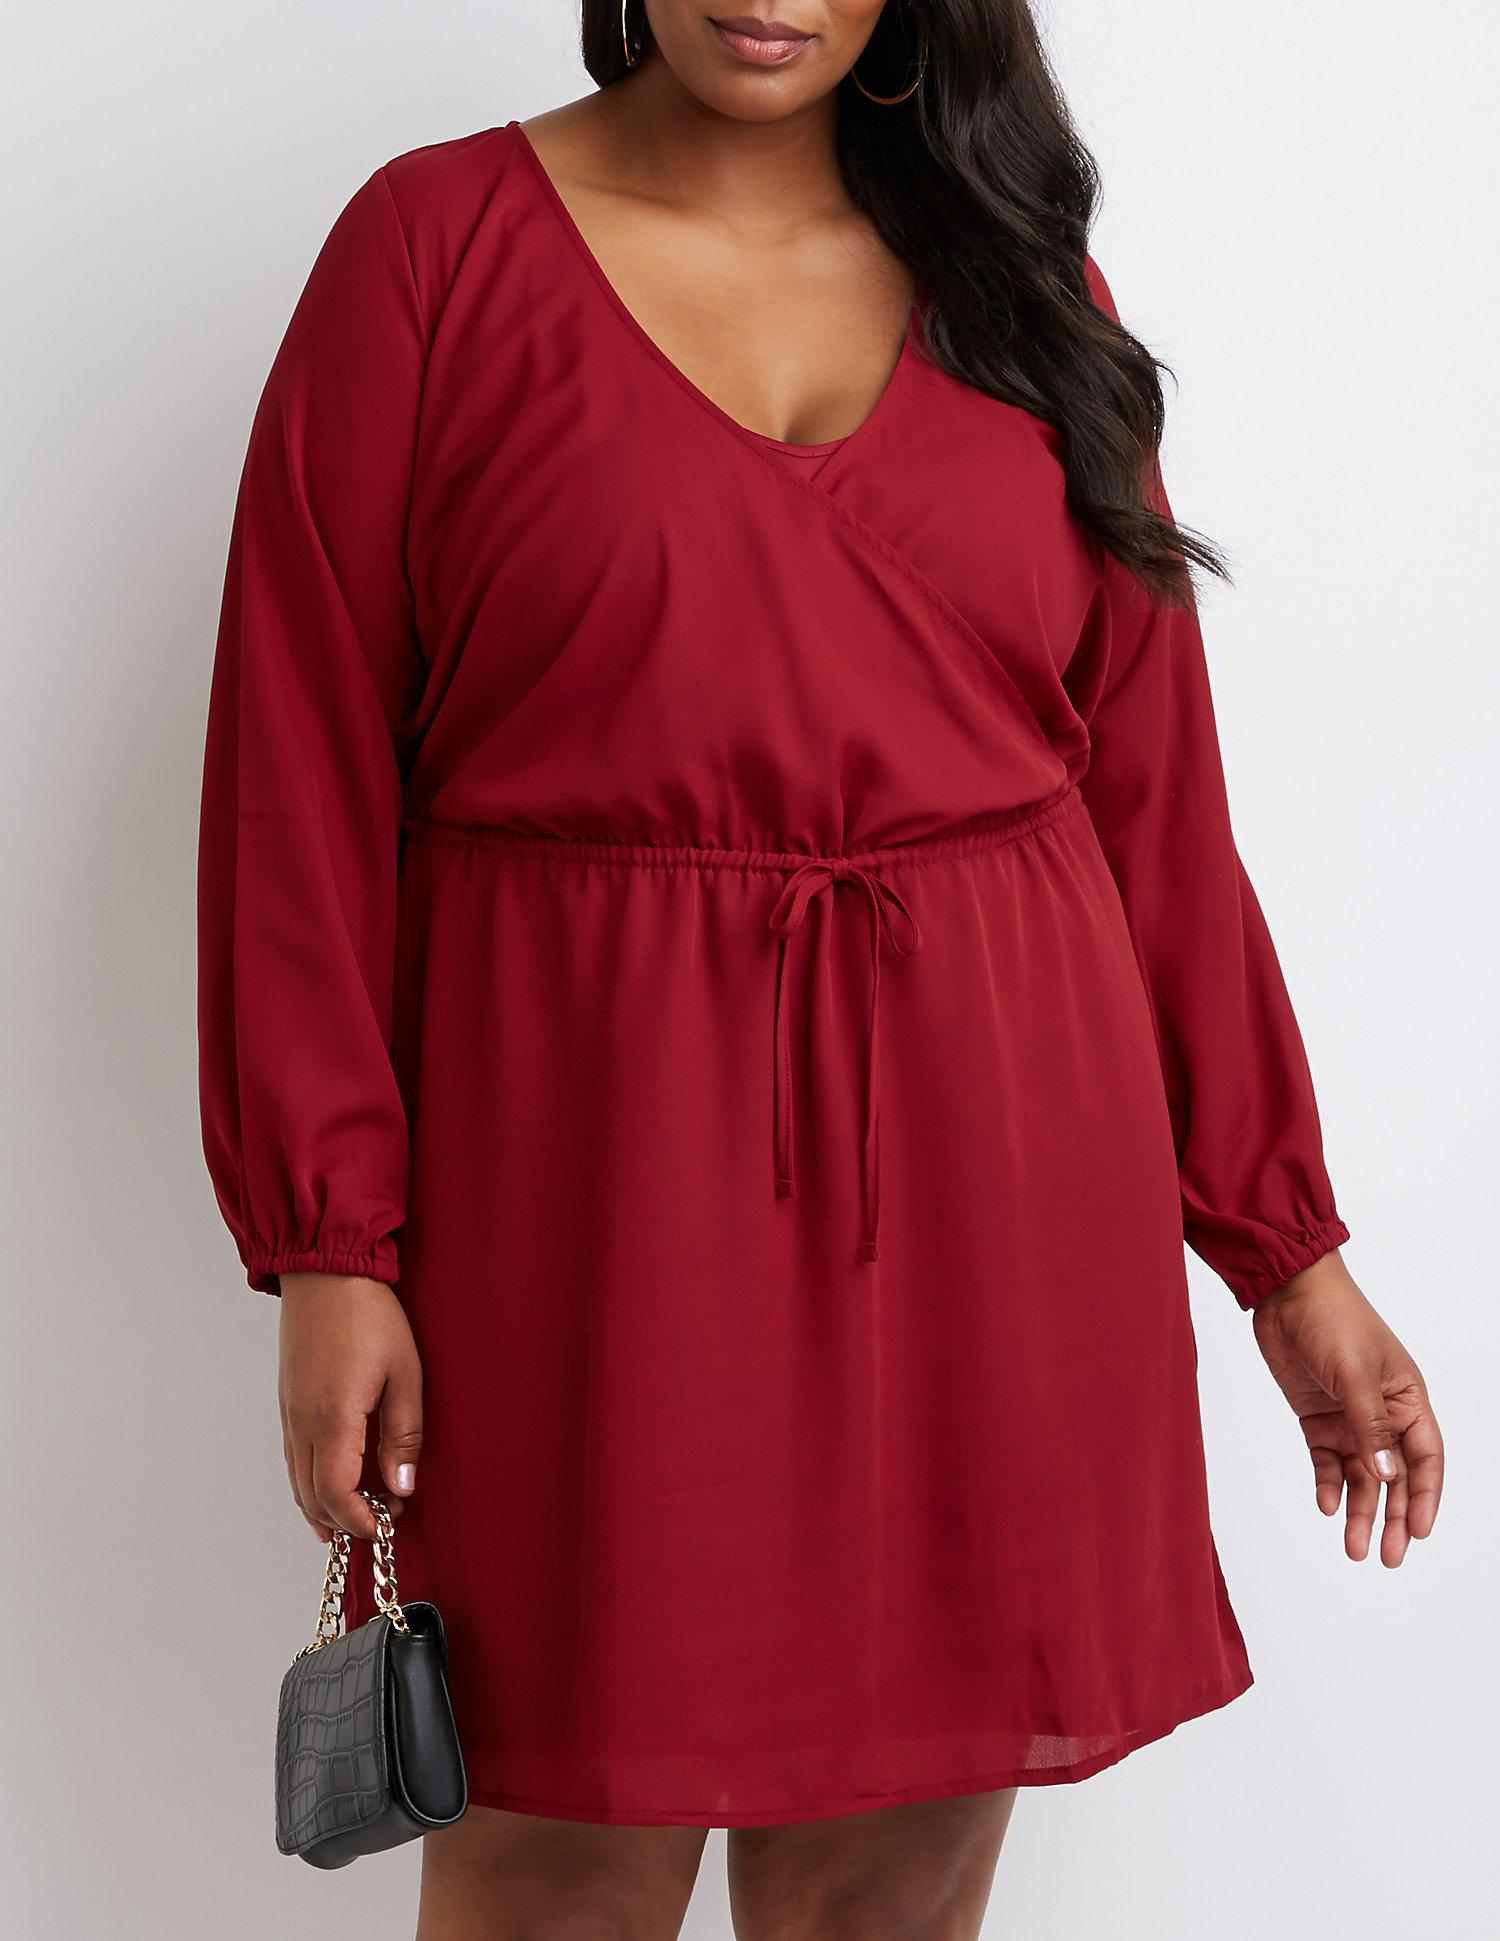 Lyst - Charlotte Russe Plus Size Keyhole Wrap Dress in Red